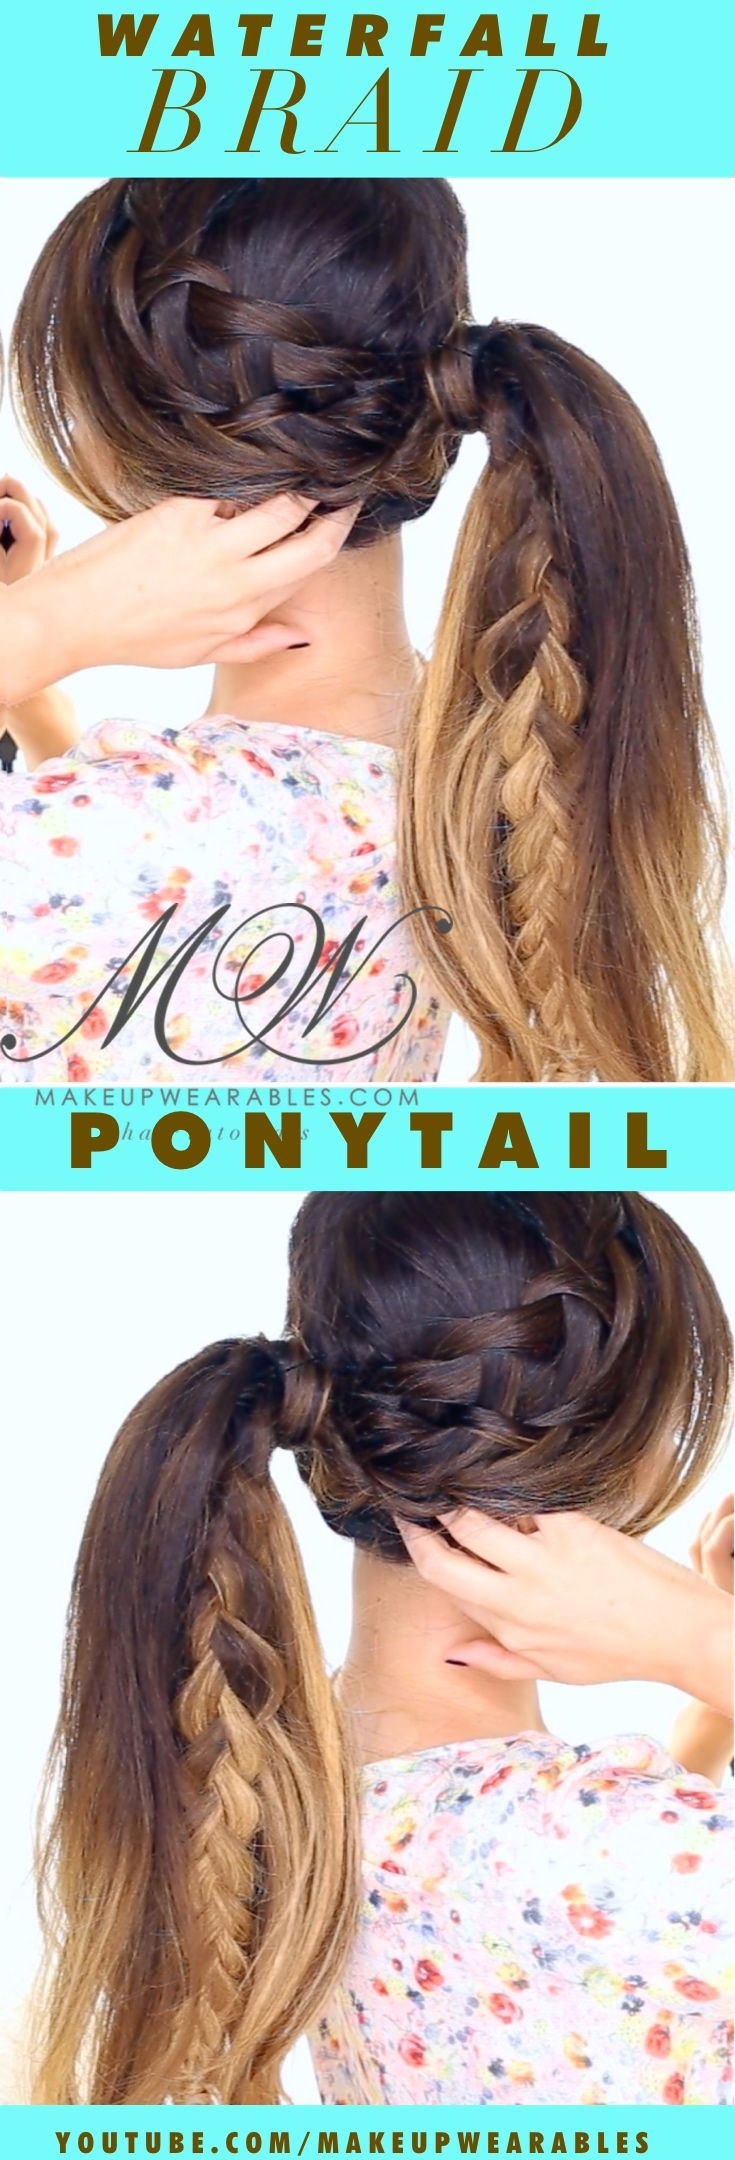 Click to watch - How to Waterfall Braid Ponytail |Cute Fall Hair Styles for Medium or Long Hair